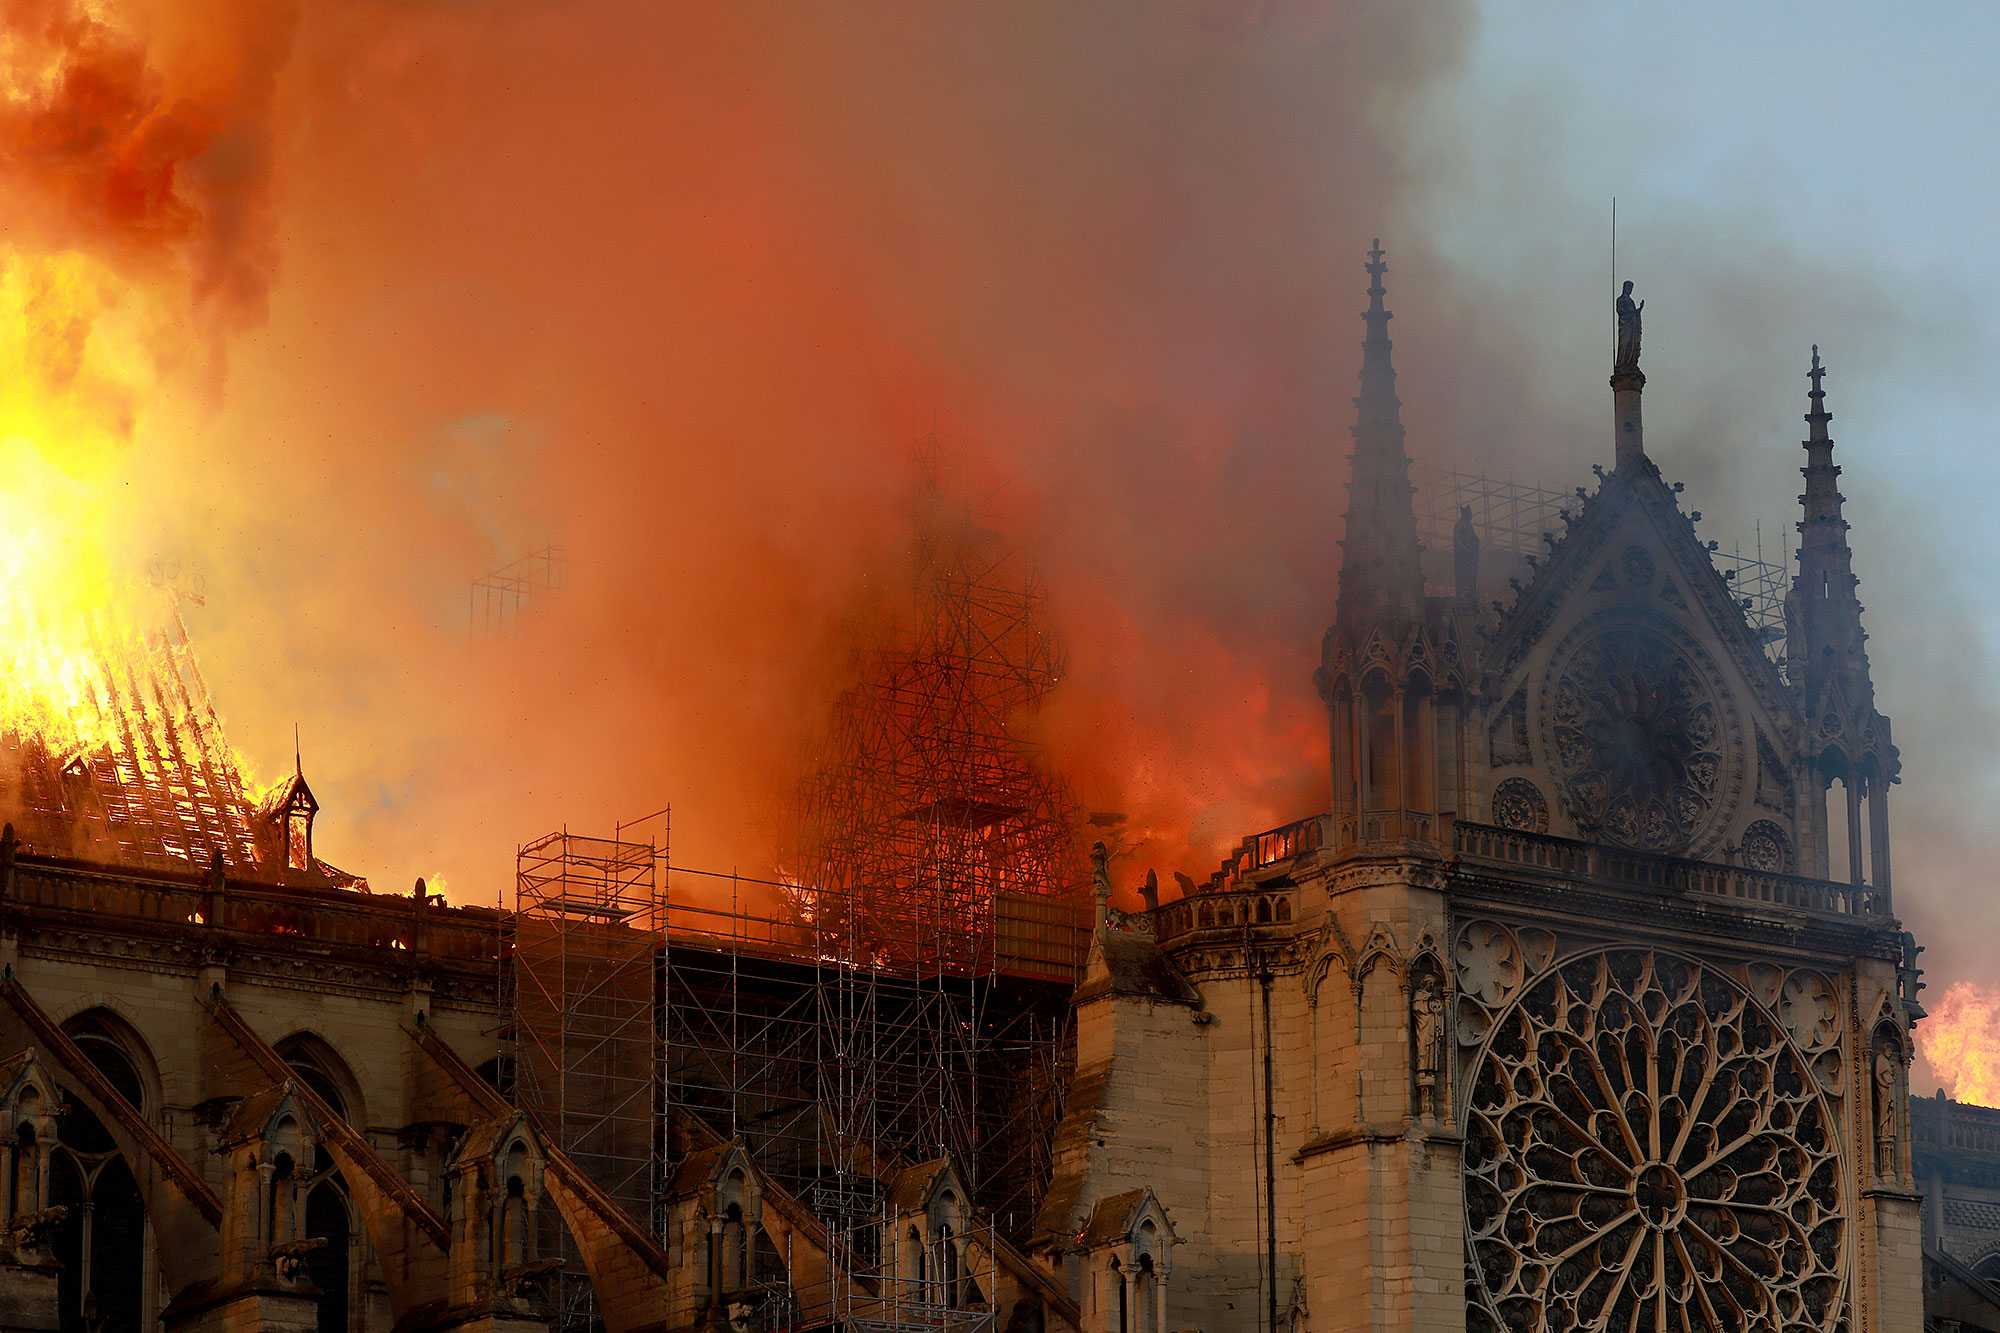 Notre Dame on Fire d - Flames and smoke are seen billowing from the roof at Notre-Dame Cathedral April 15, 2019 in Paris, France.